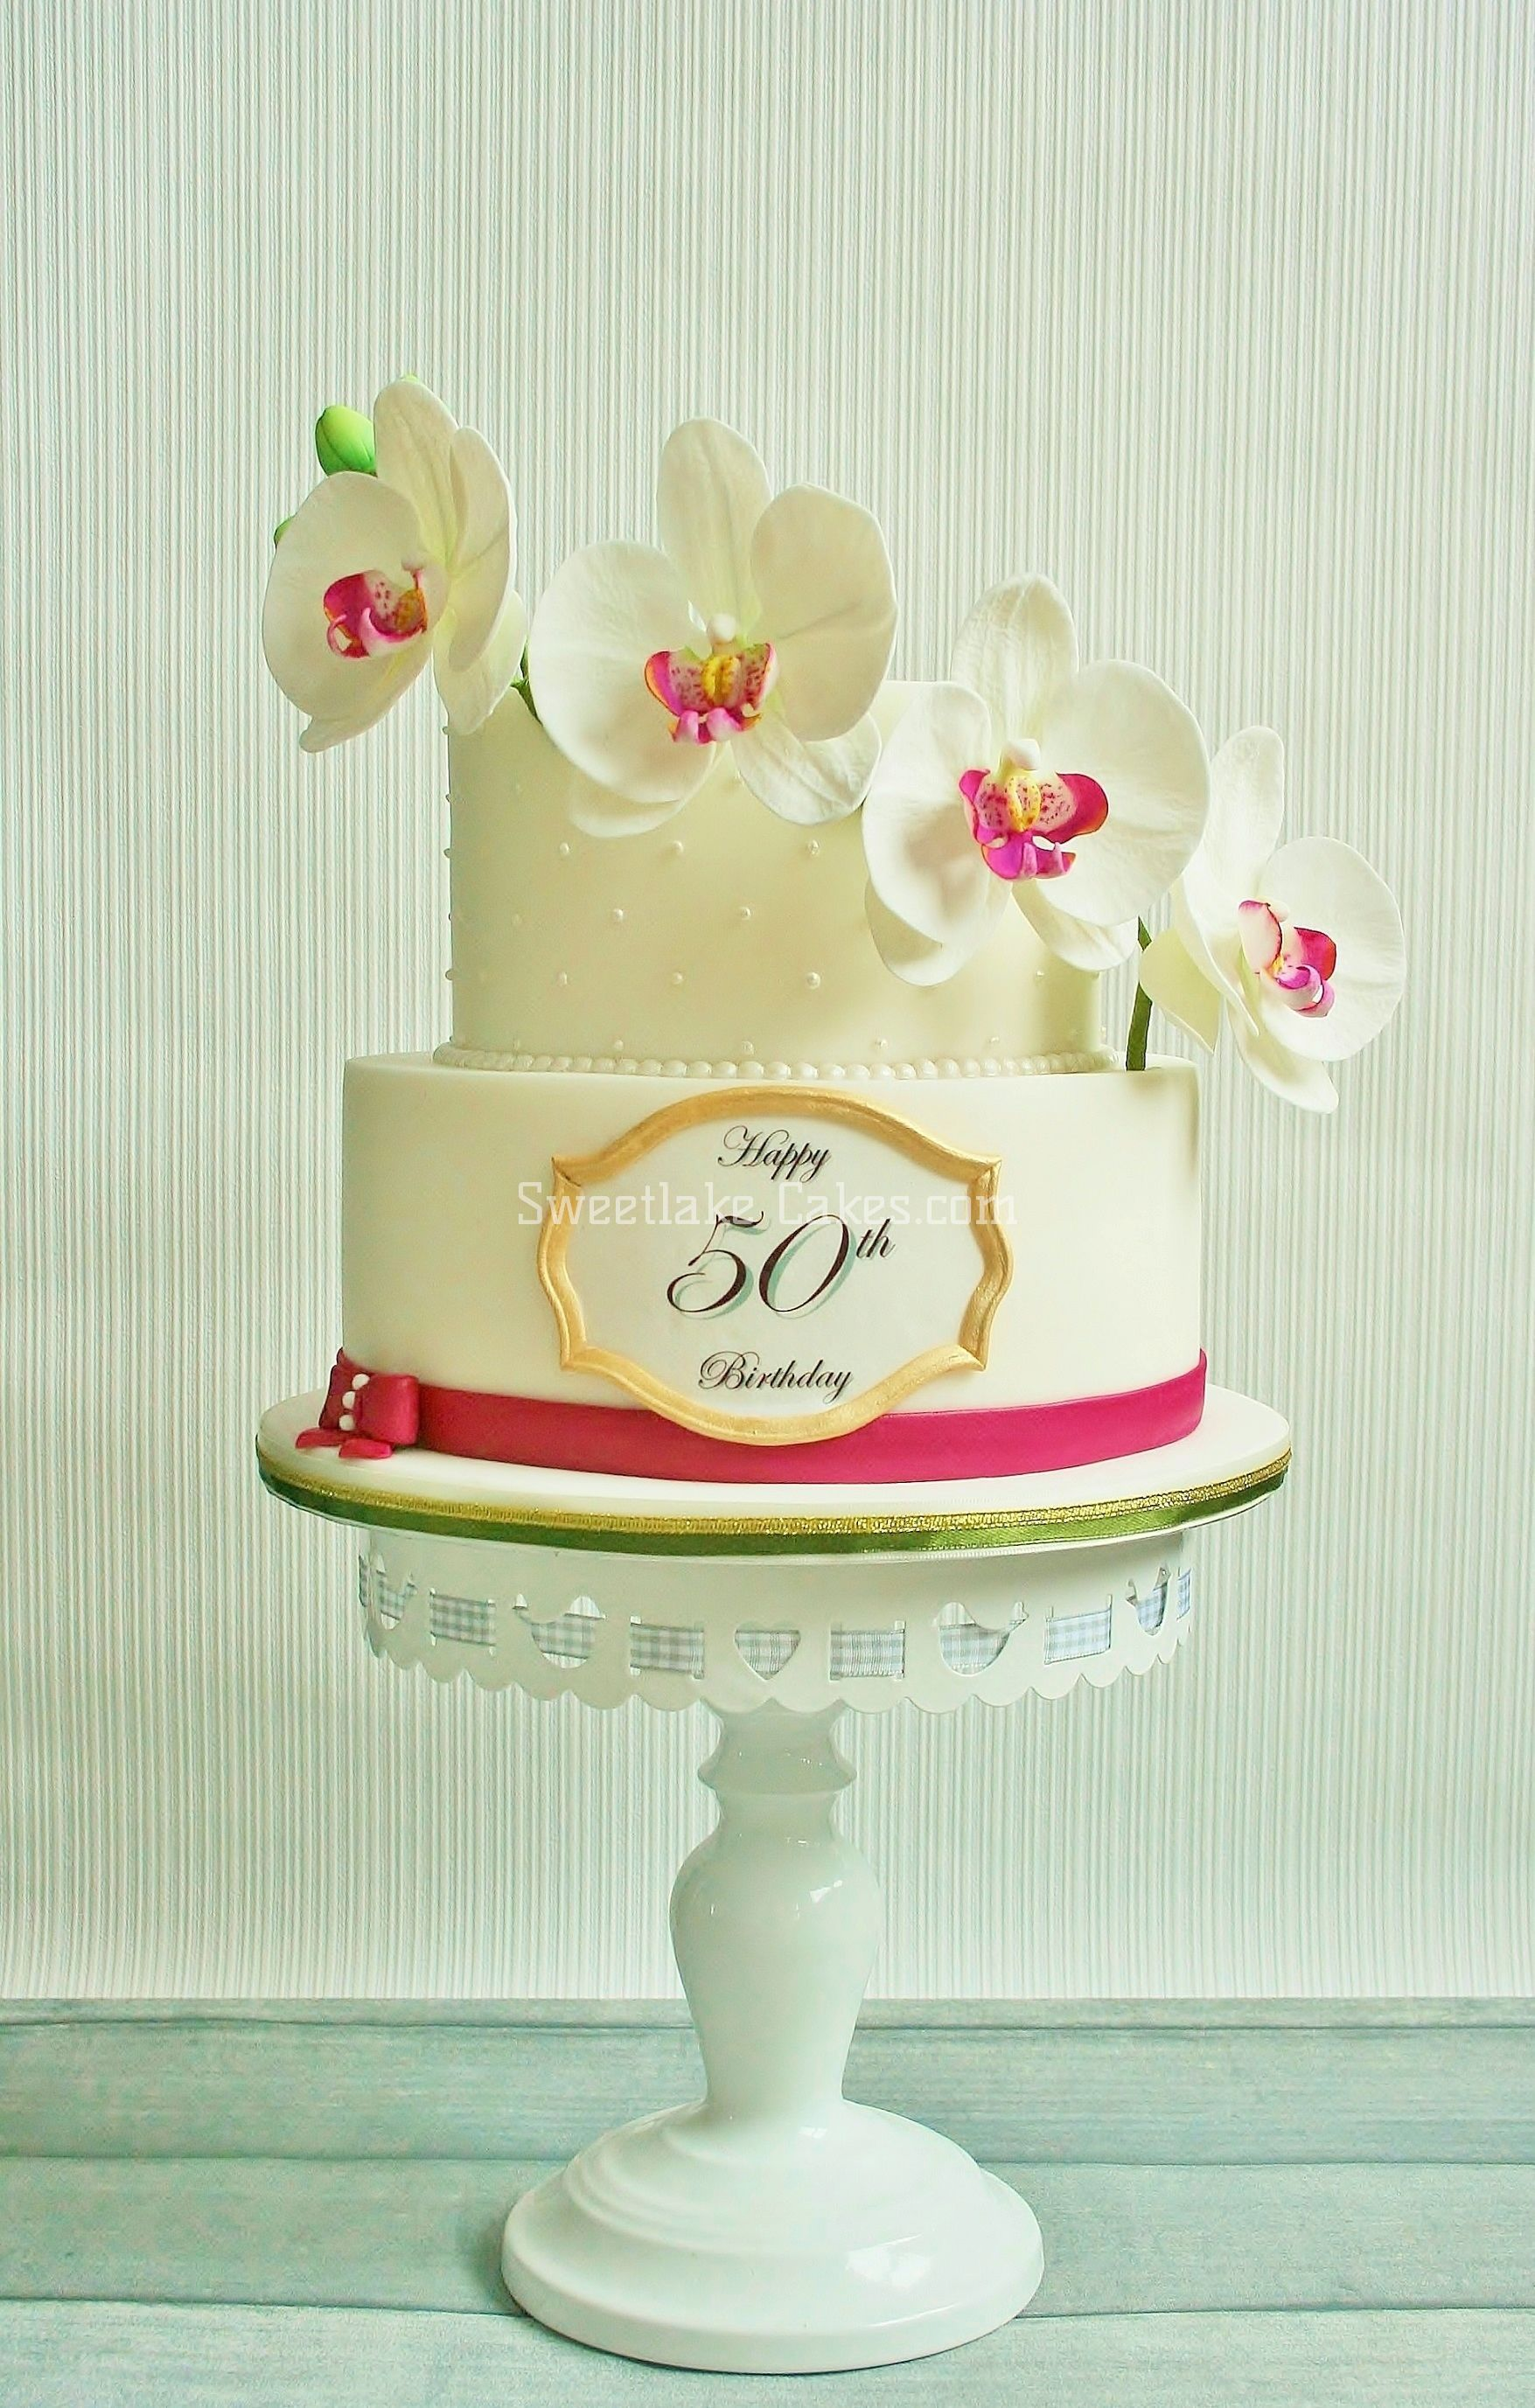 Moth orchid cake - A birthday cake, filled with mango cream